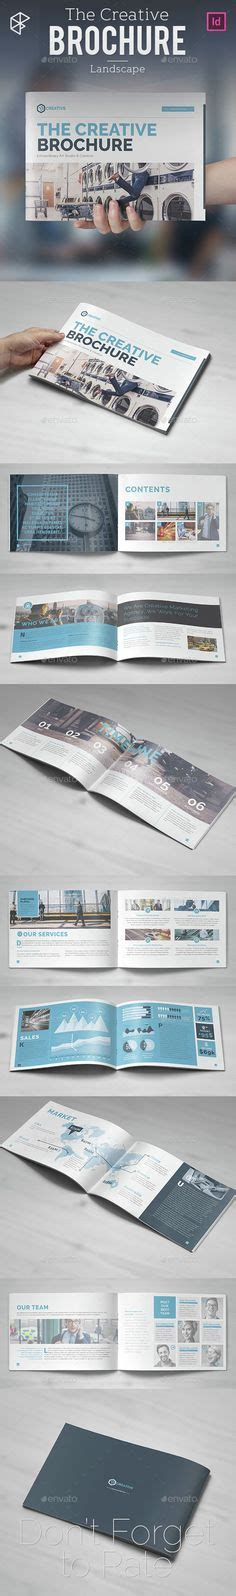 landscape layout in indesign coffee table book layout google search editorial ideas